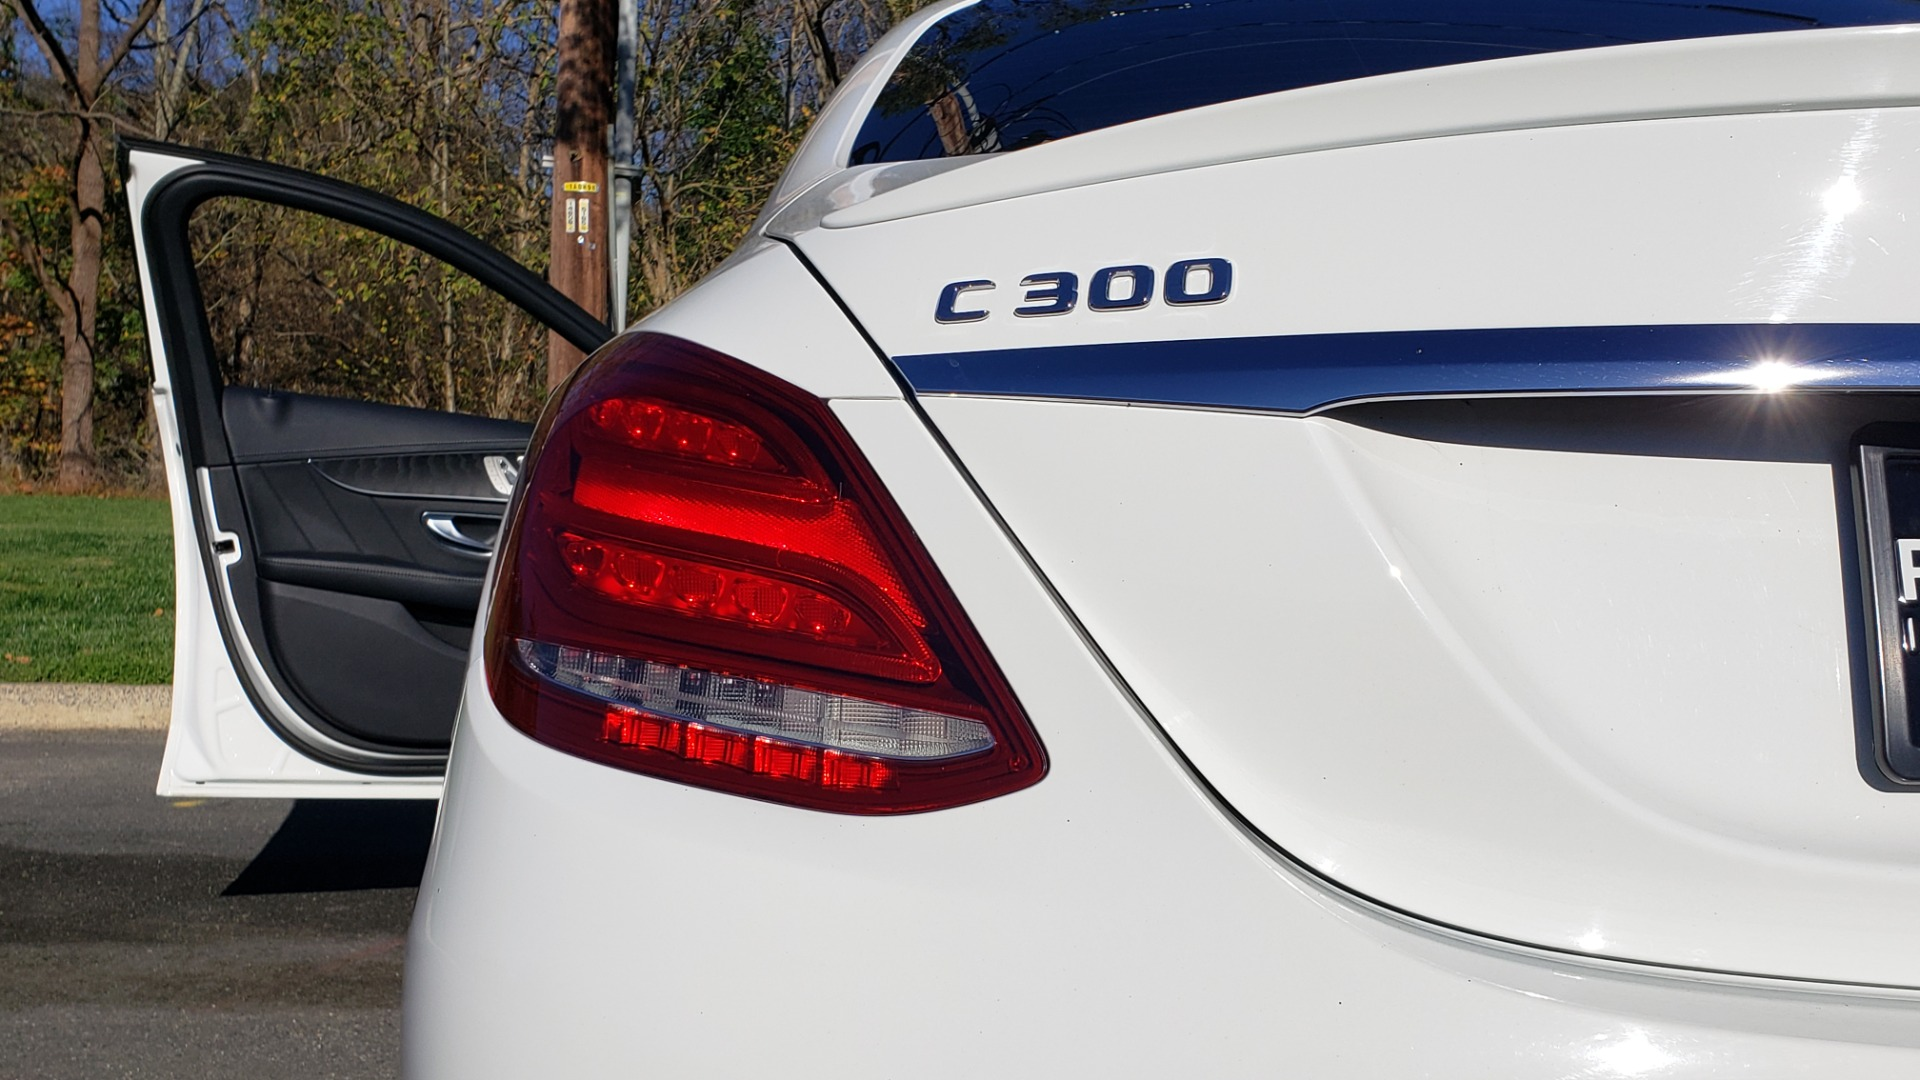 Used 2017 Mercedes-Benz C-CLASS C 300 SPORT / PREM PKG / PANO-ROOF / NAV / HTD STST / REARVIEW for sale Sold at Formula Imports in Charlotte NC 28227 22